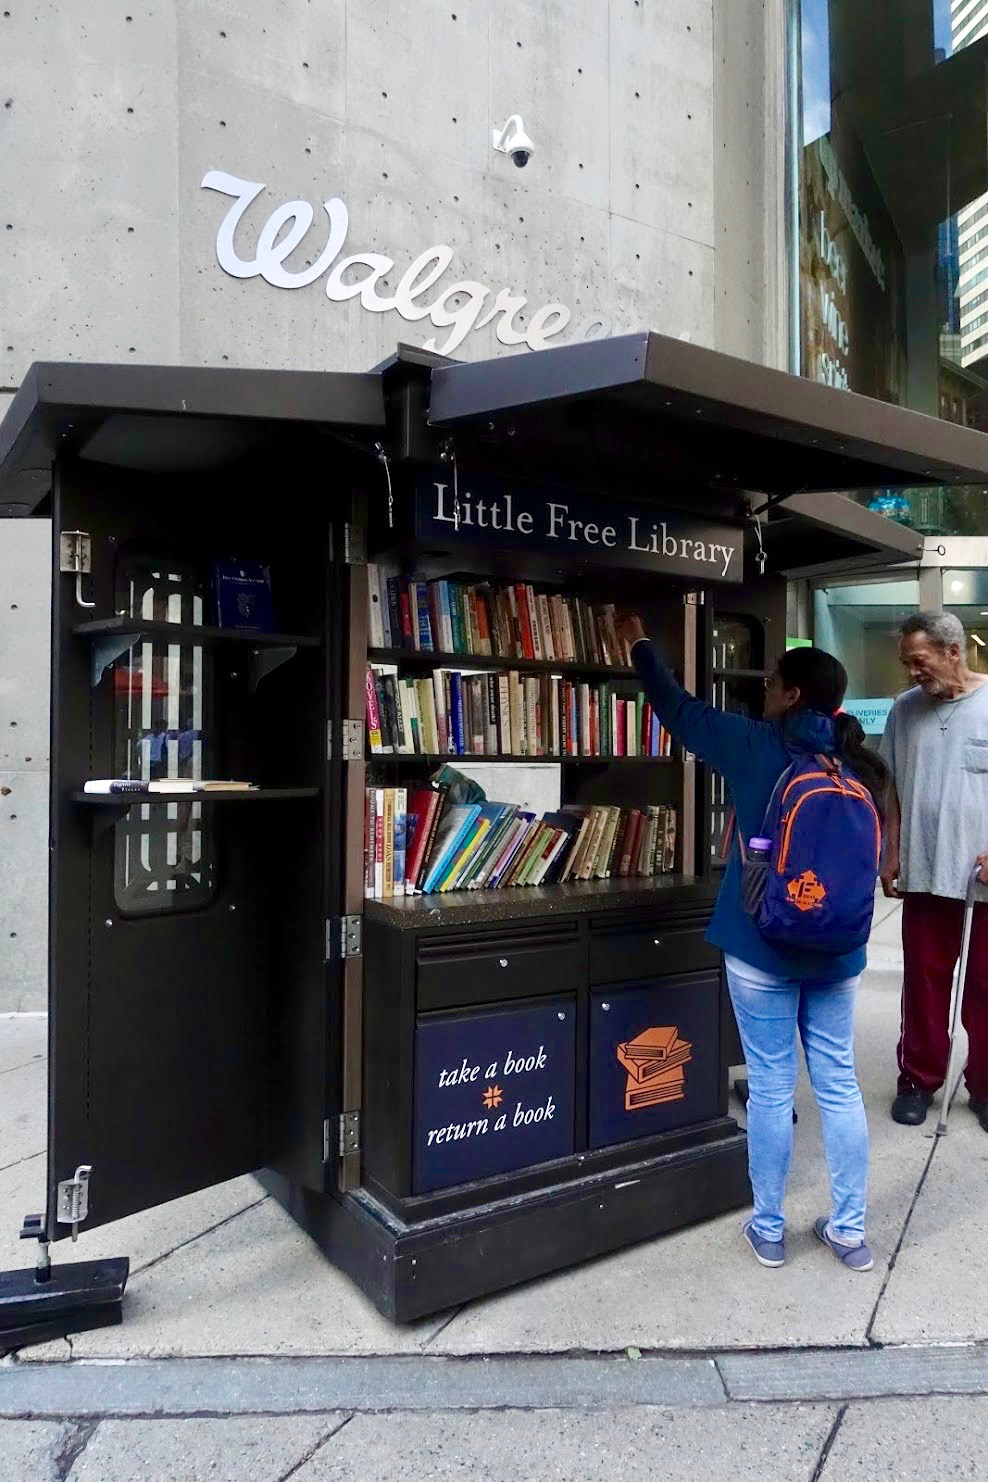 Little Free Library bij Walgreens in Boston